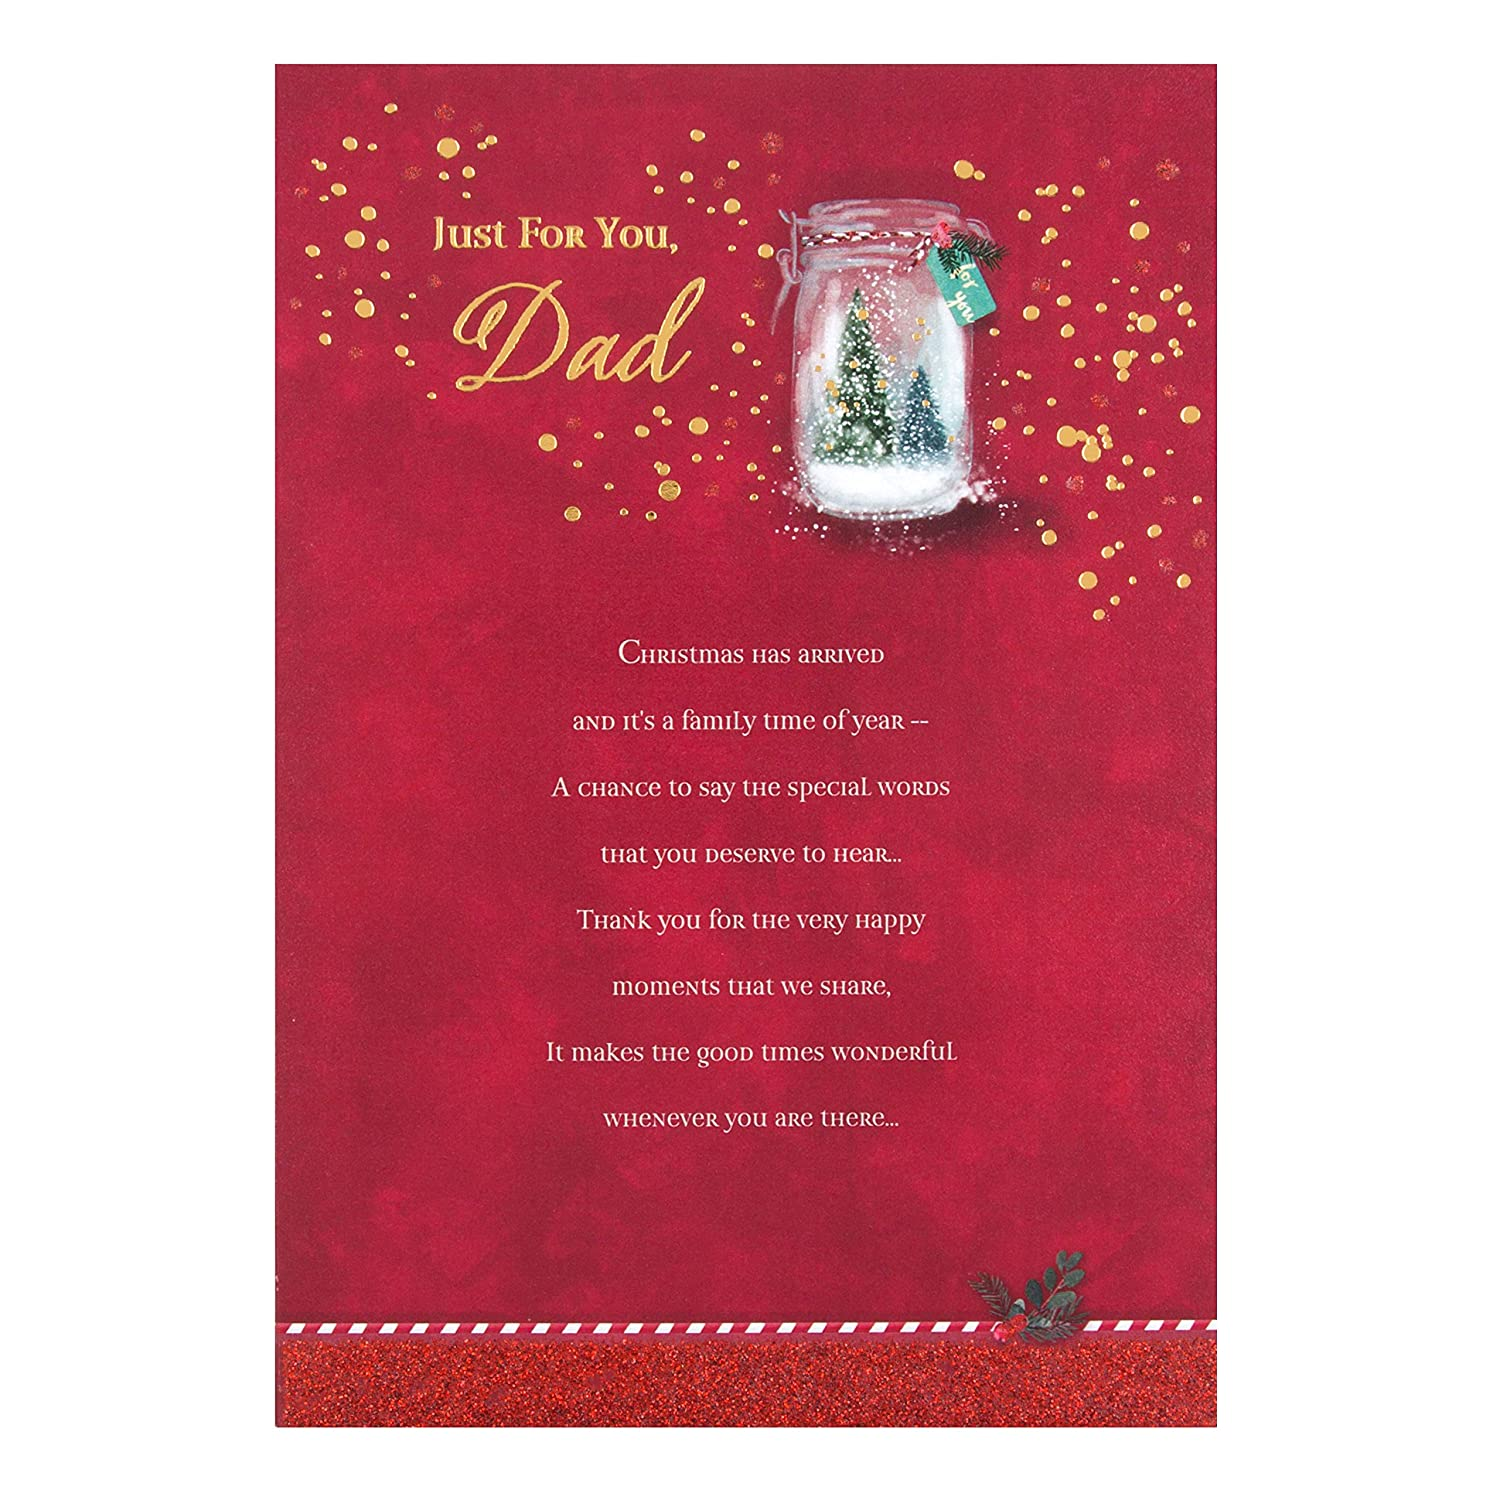 Hallmark Dad Christmas Card Special Season Medium Amazon